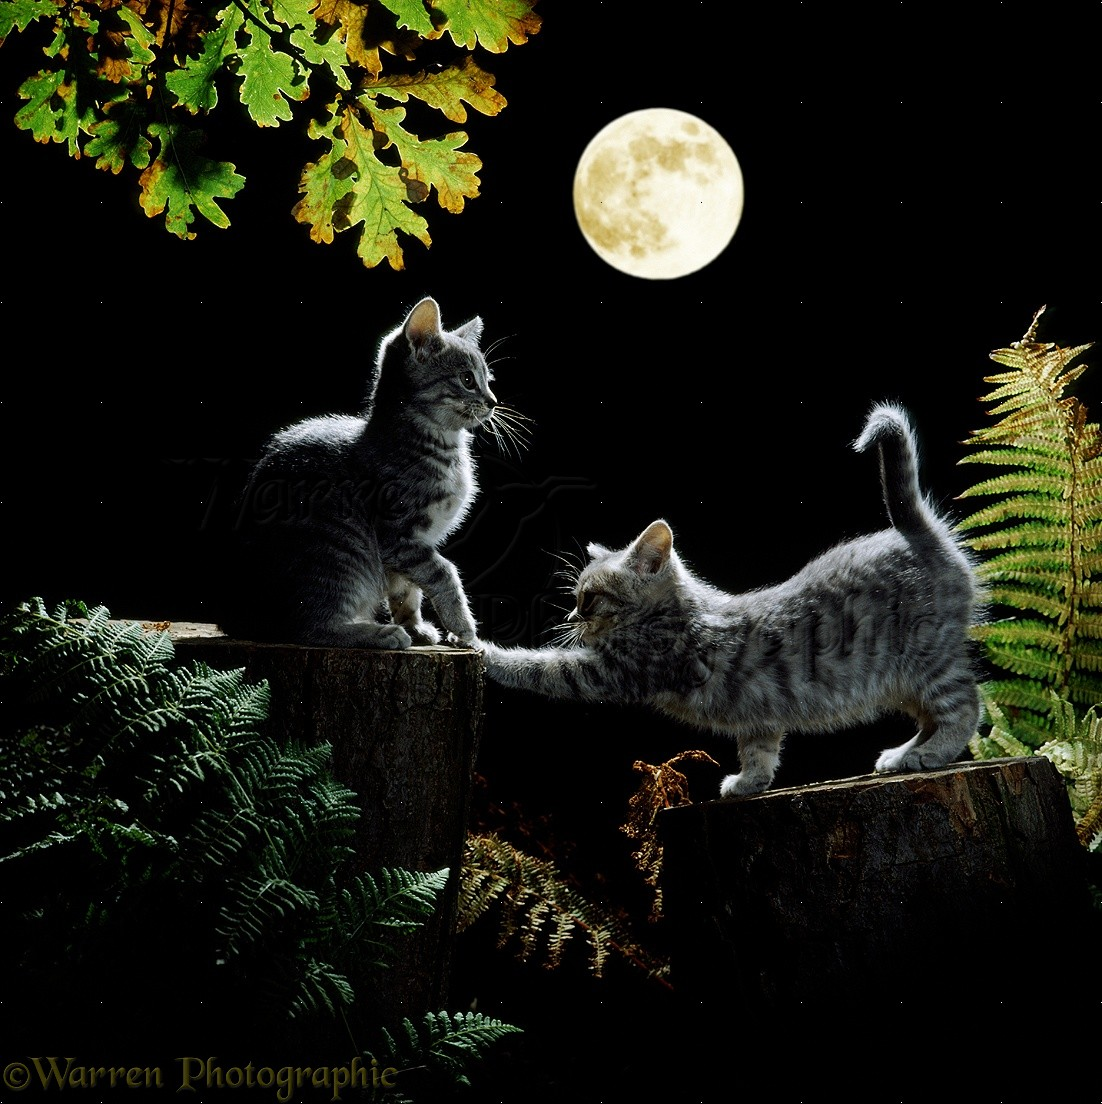 Warren Moon >> Kittens out at night, by moonlight photo - WP13221